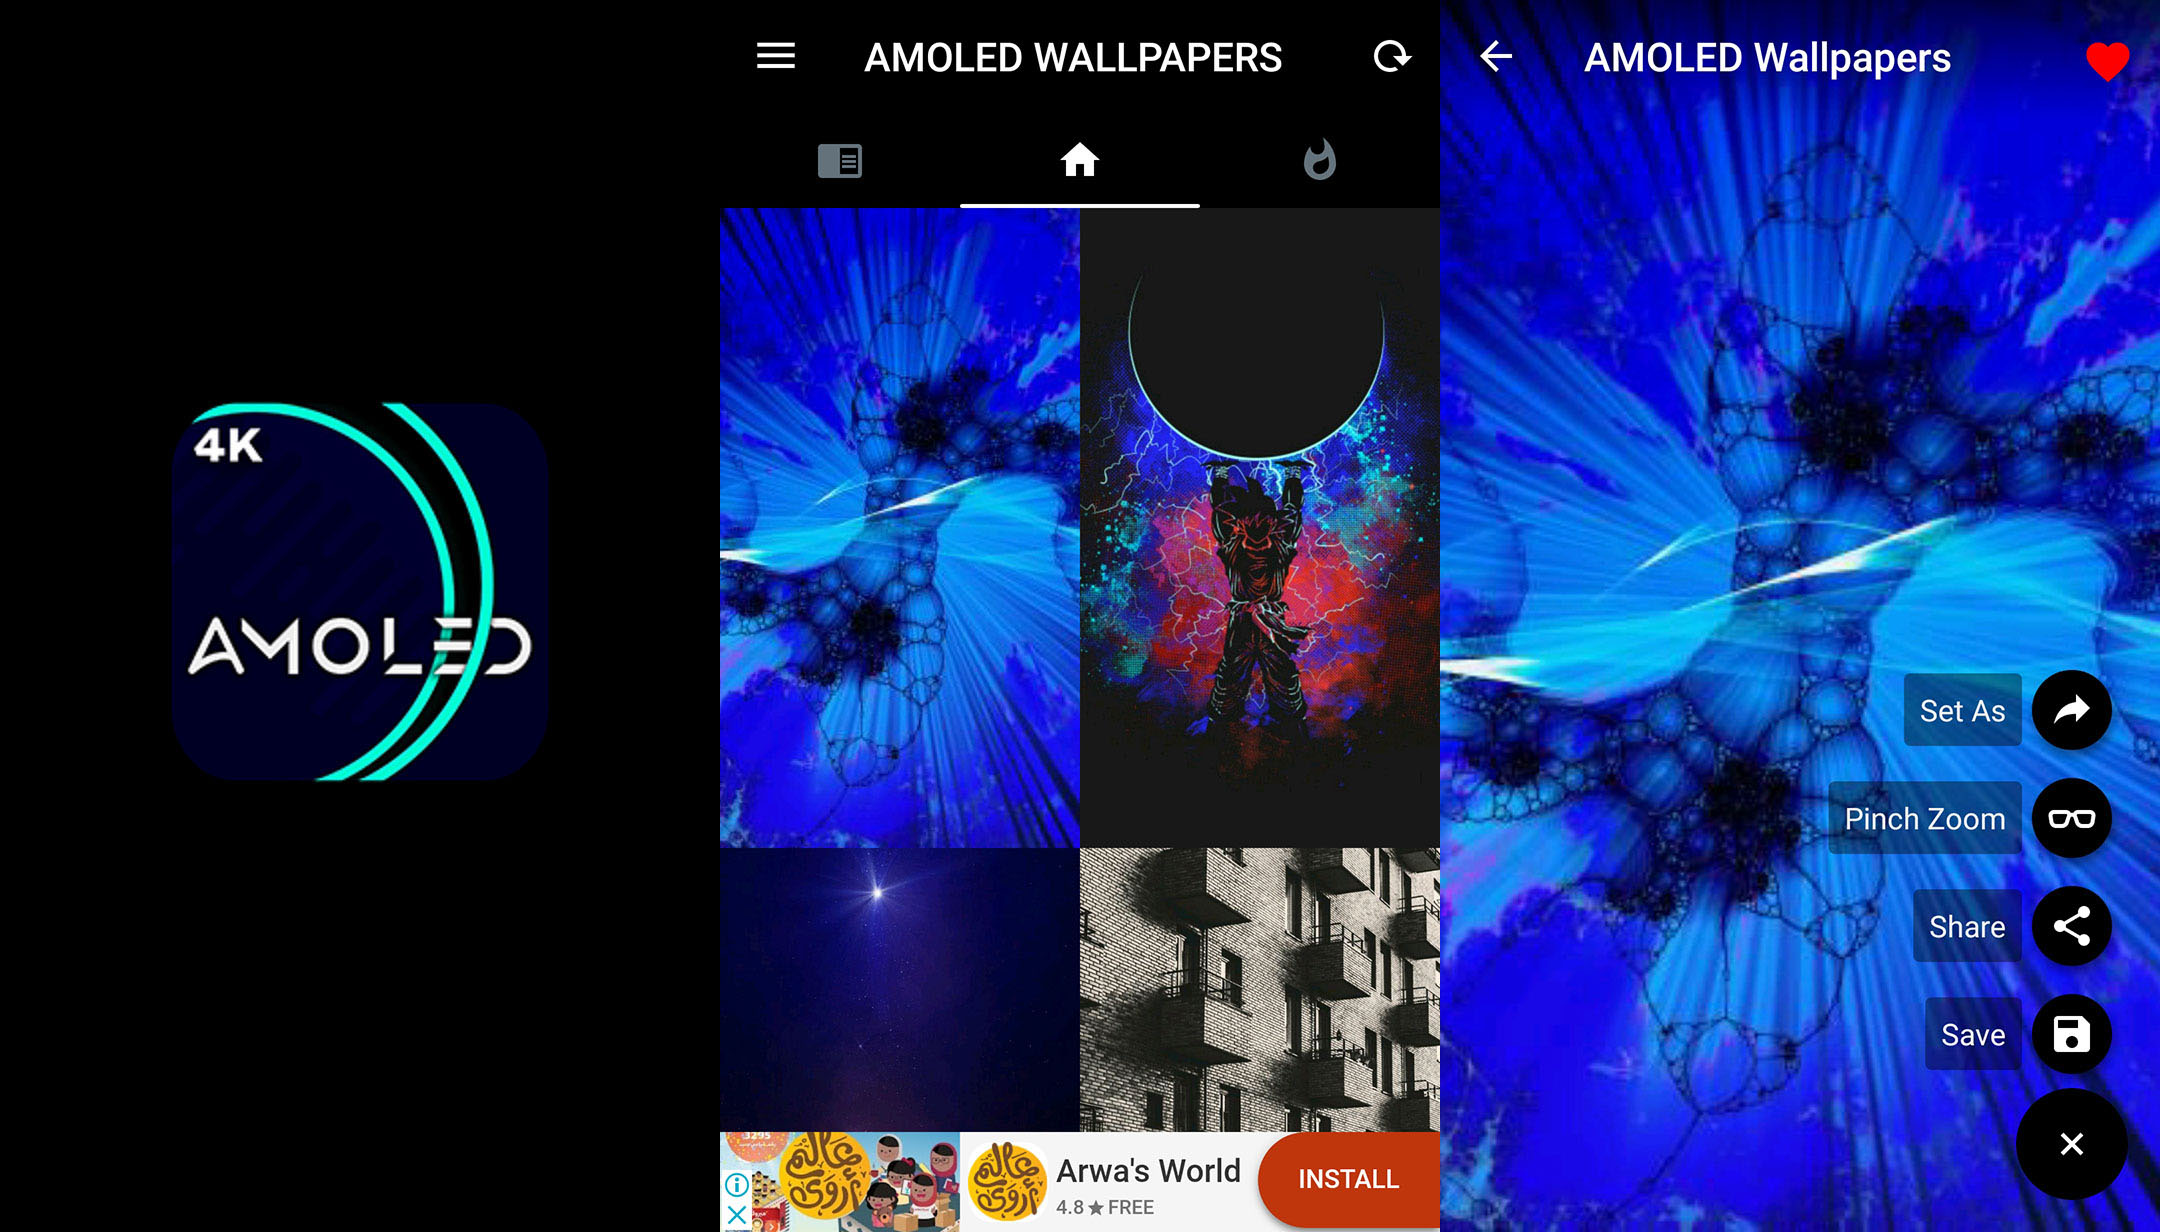 Download Amoled Wallpapers 4k Full Hd Backgrounds Latest Version For Android Free